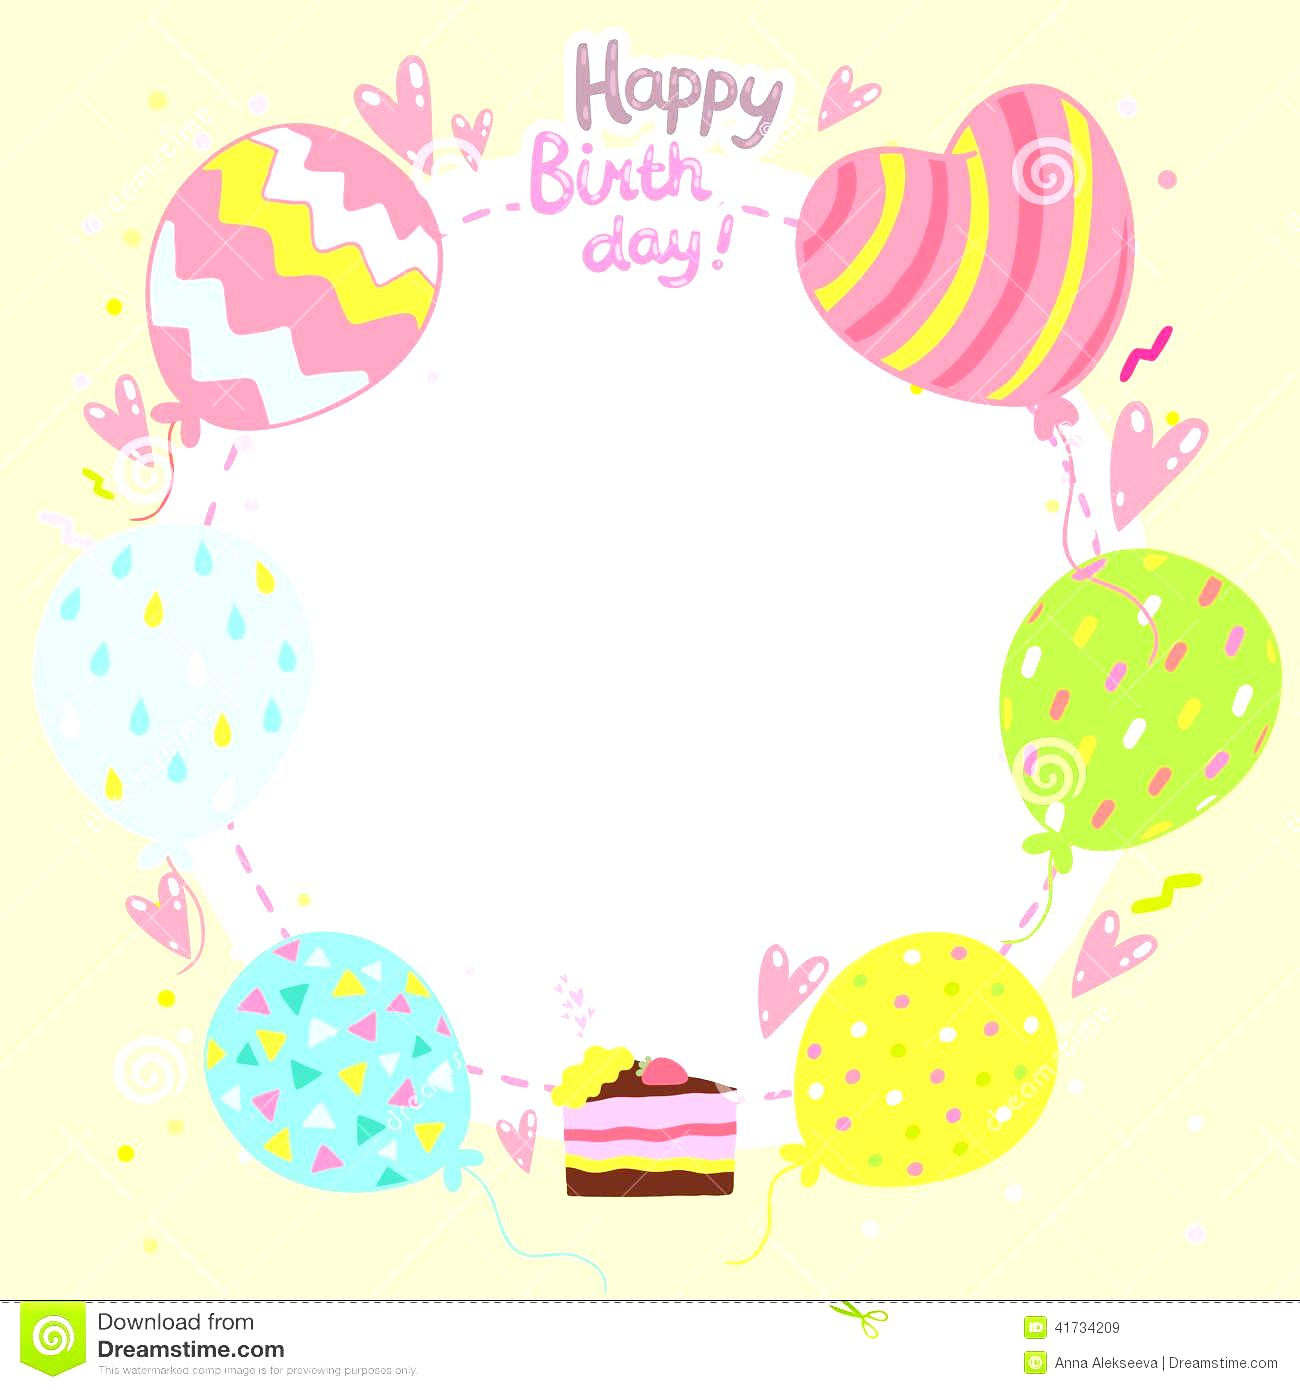 printable birthday card template word ; birthday-card-word-templates-free-unique-shapes-balloons-with-cute-colored-pastel-decoration-cake-free-birthday-card-template